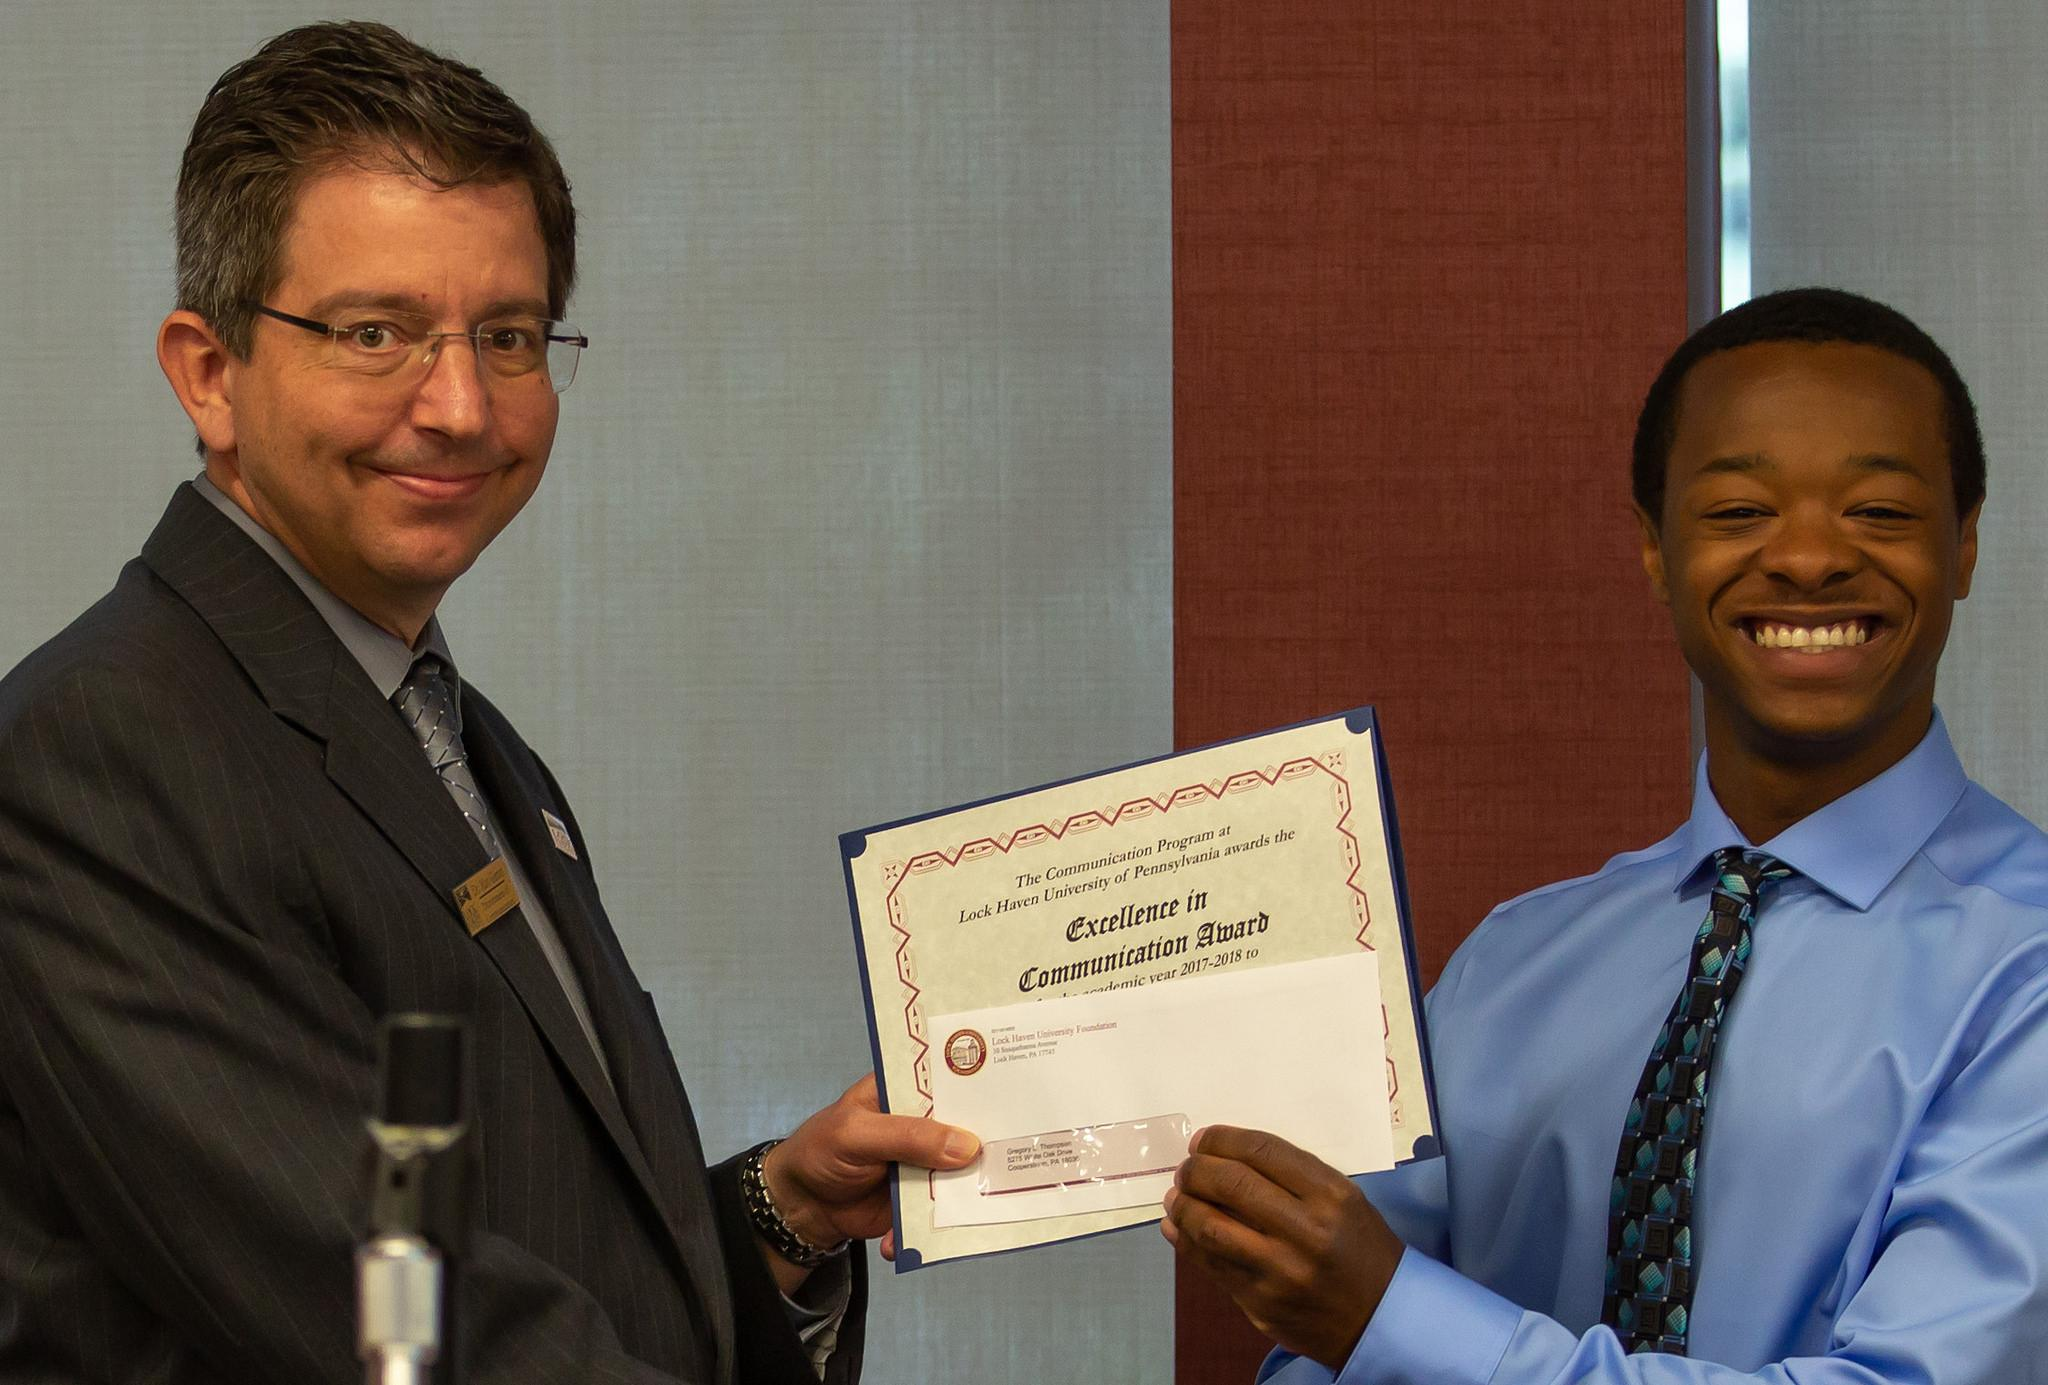 Gregory Thompson – Gregory Thompson, Excellence in Communication Award winner, right, presented by Dr. Matthew Girton, LHU professor.